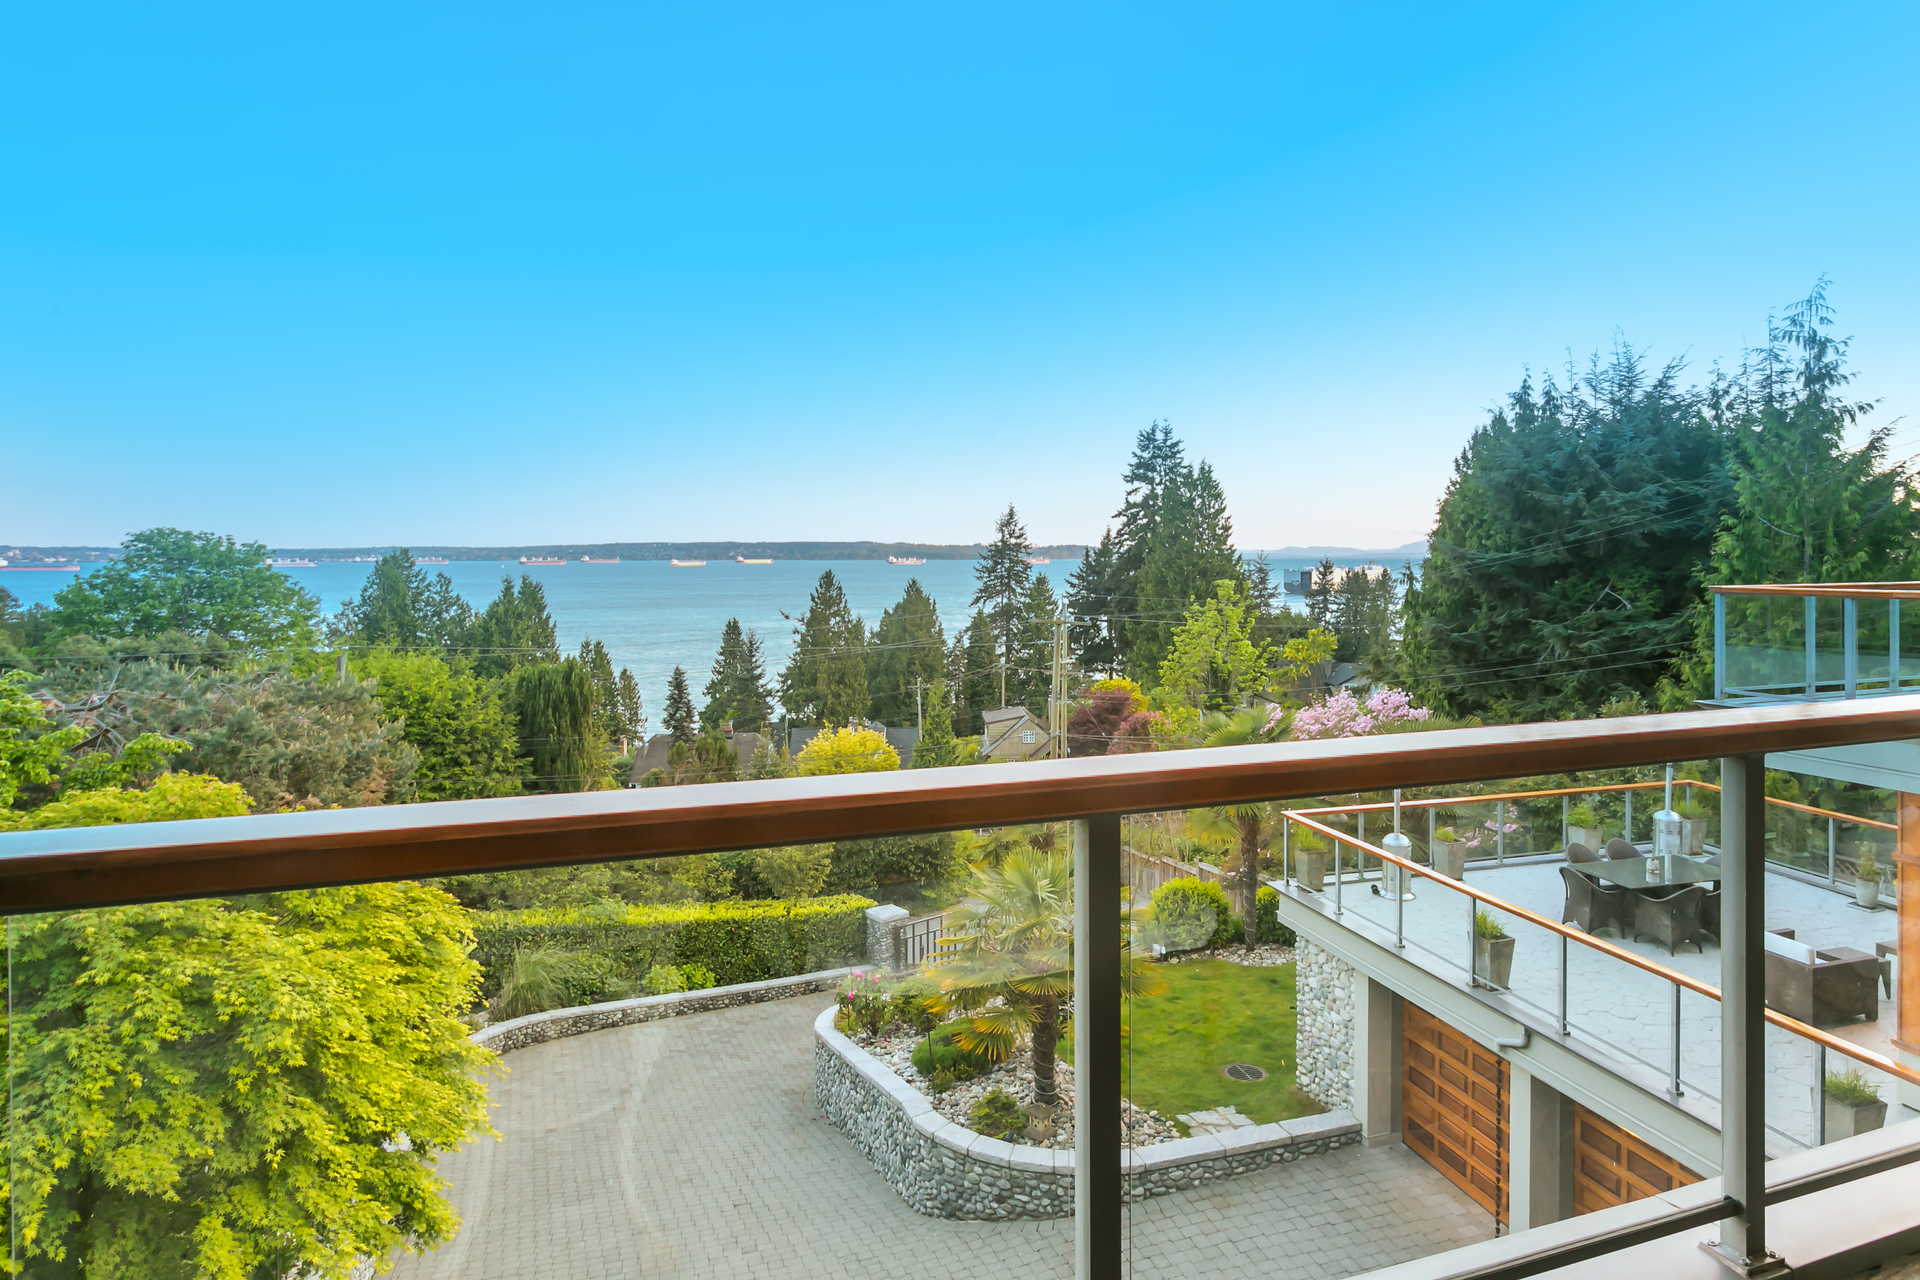 1J6A9074 at 3285 Dickinson Crescent, West Bay, West Vancouver